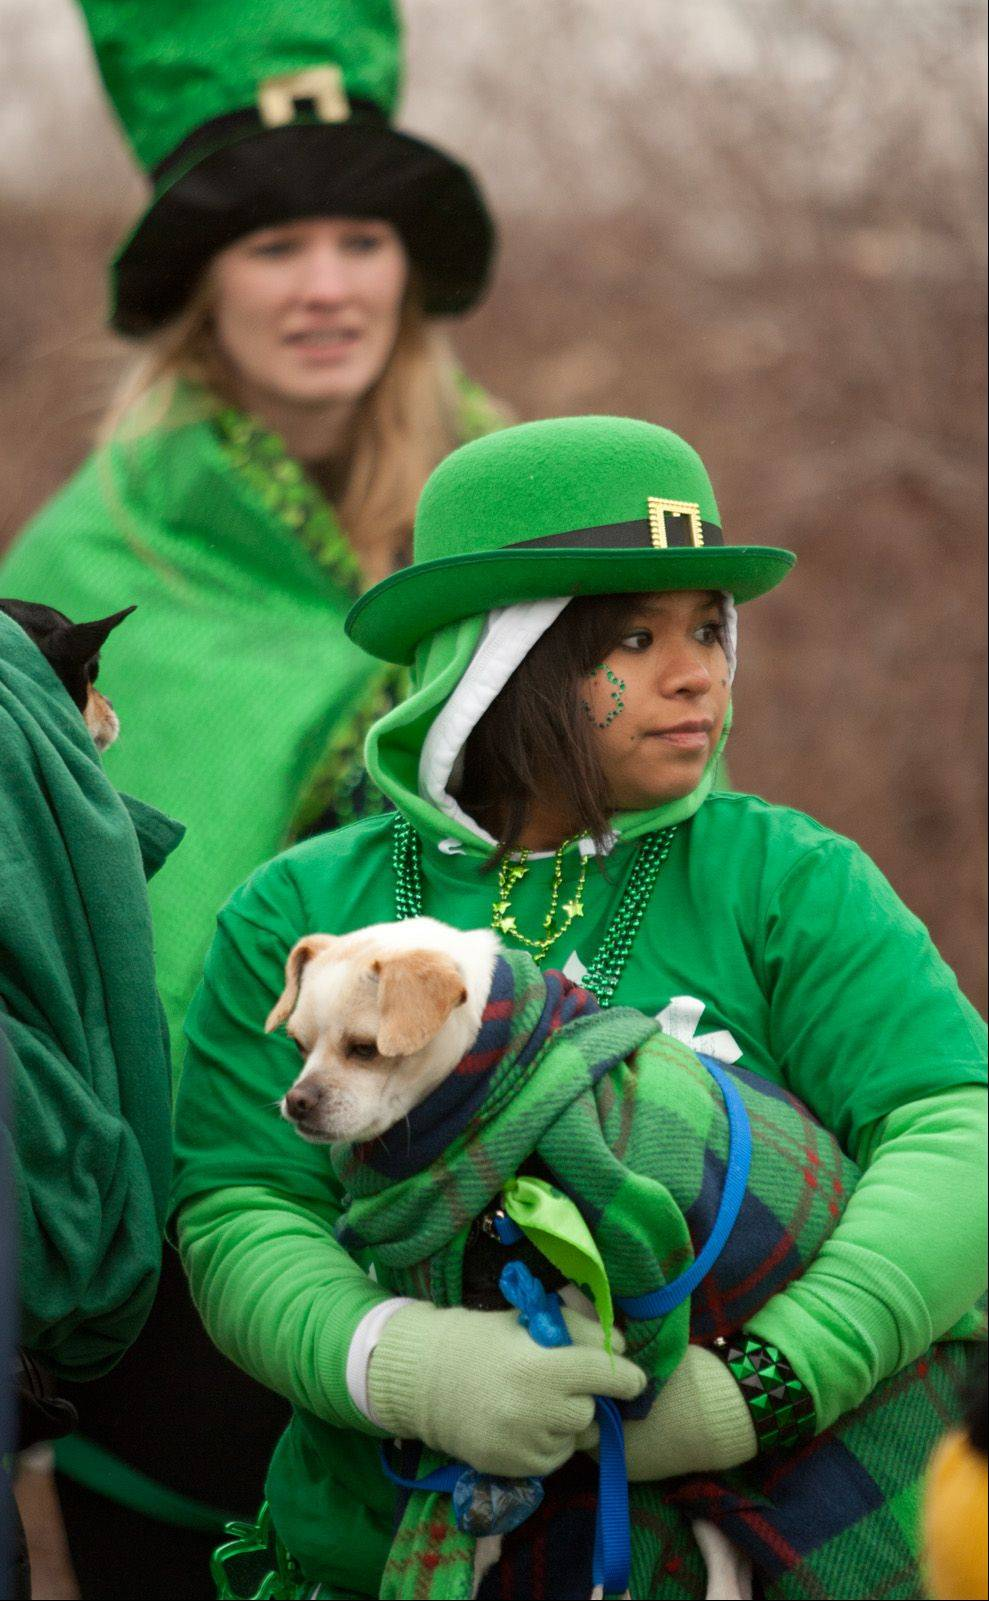 Irene Zaccarine of ADOPT Pet Shelter in Naperville waits to march in the Naperville's St. Patrick's Day parade.